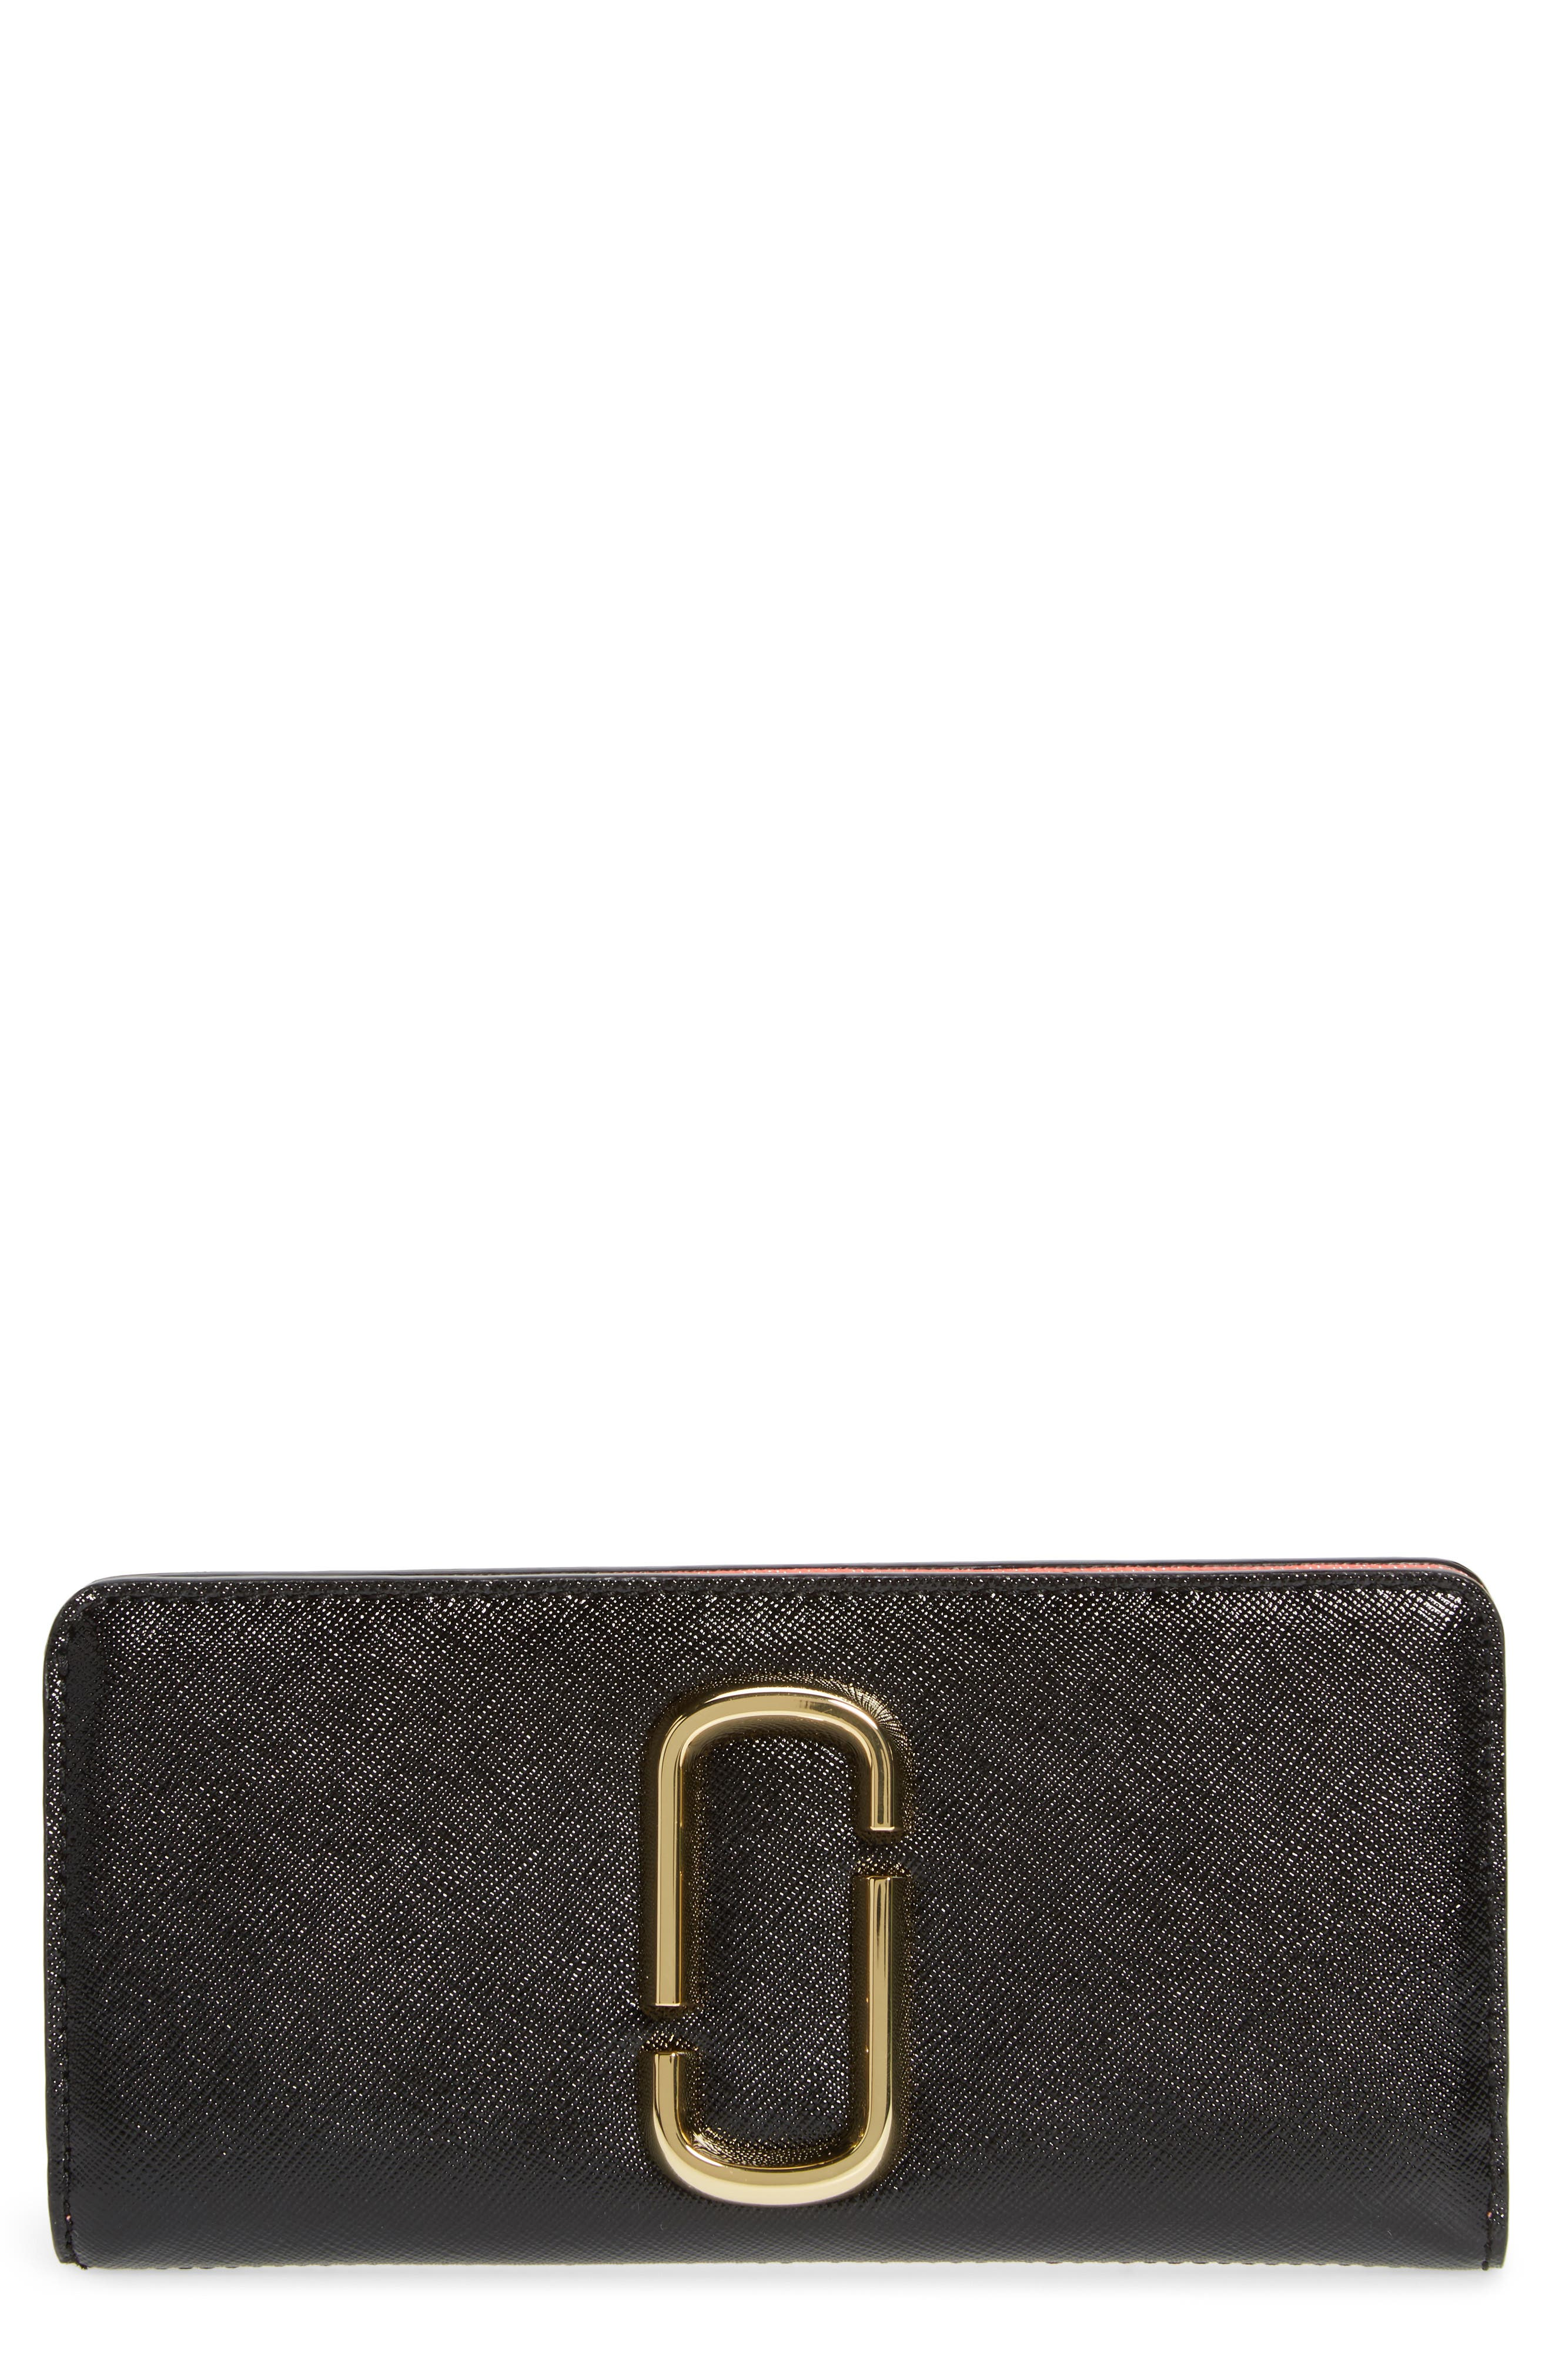 Snapshot Open Face Leather Wallet,                         Main,                         color, BLACK/ ROSE